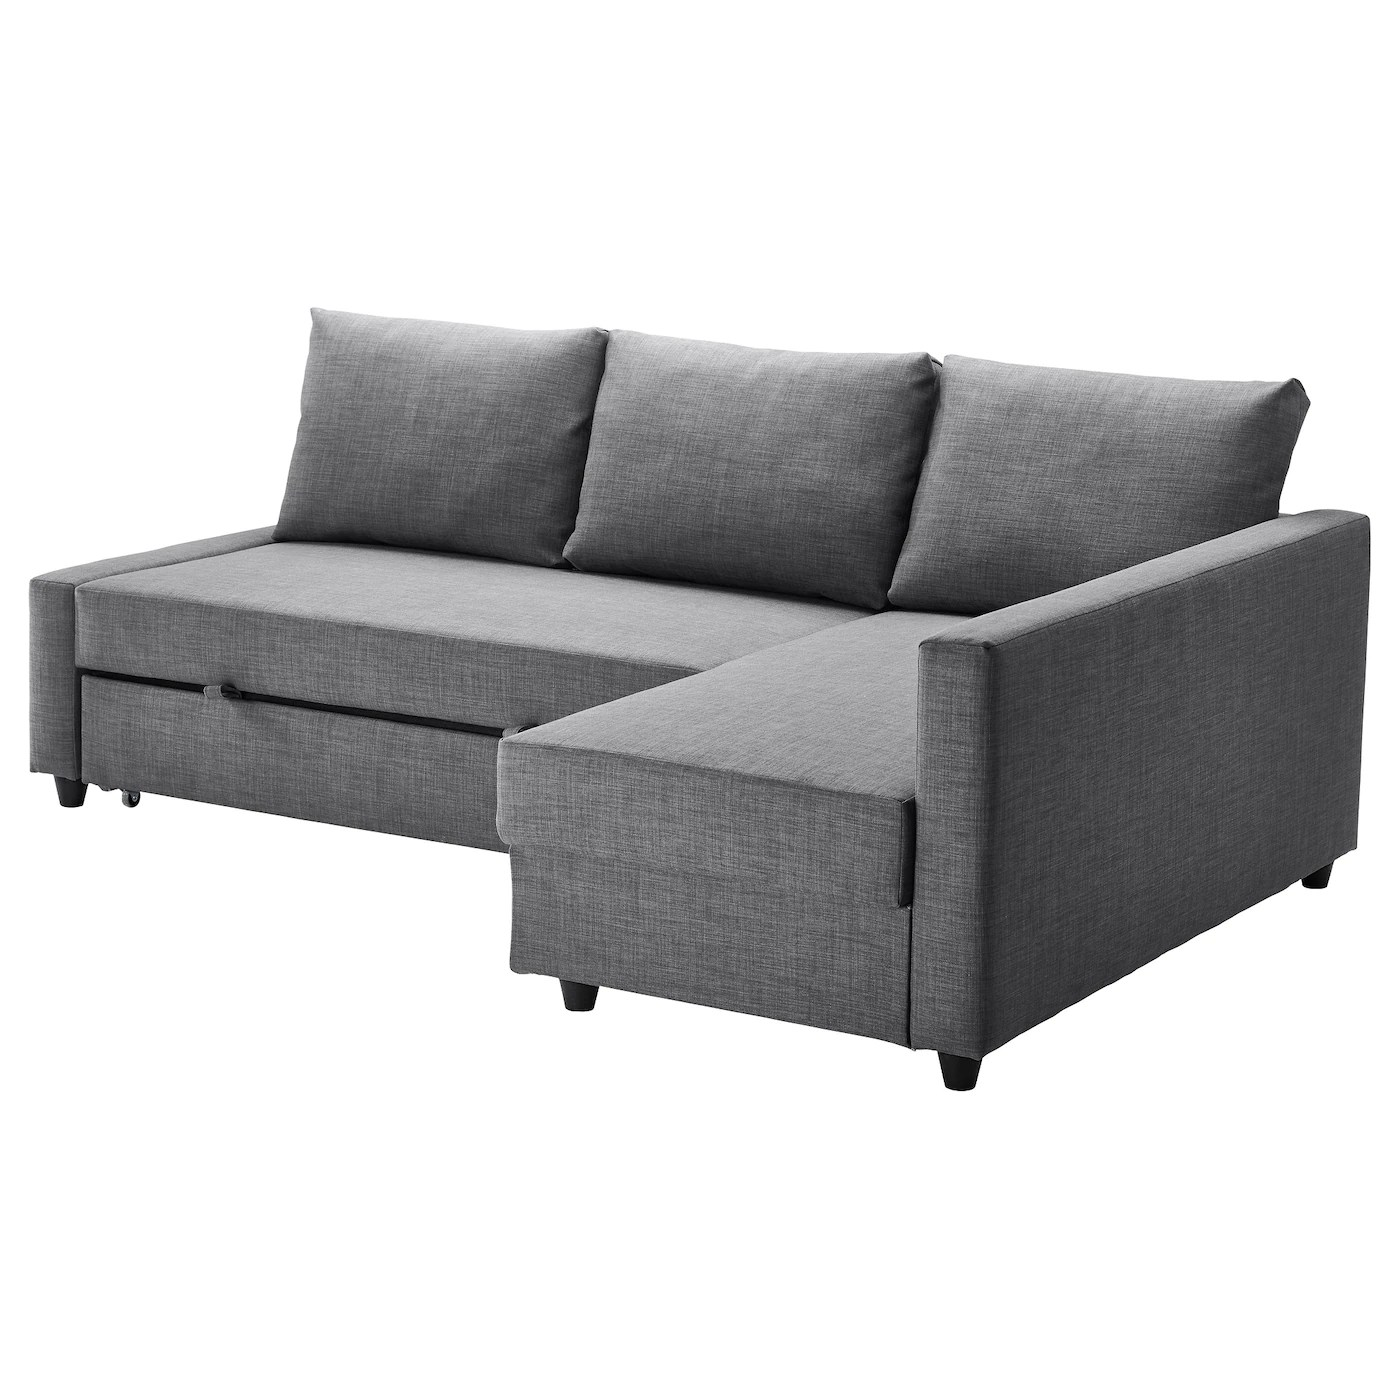 Bettsofa Ikea Friheten Friheten Corner Sofa Bed With Storage Skiftebo Dark Grey